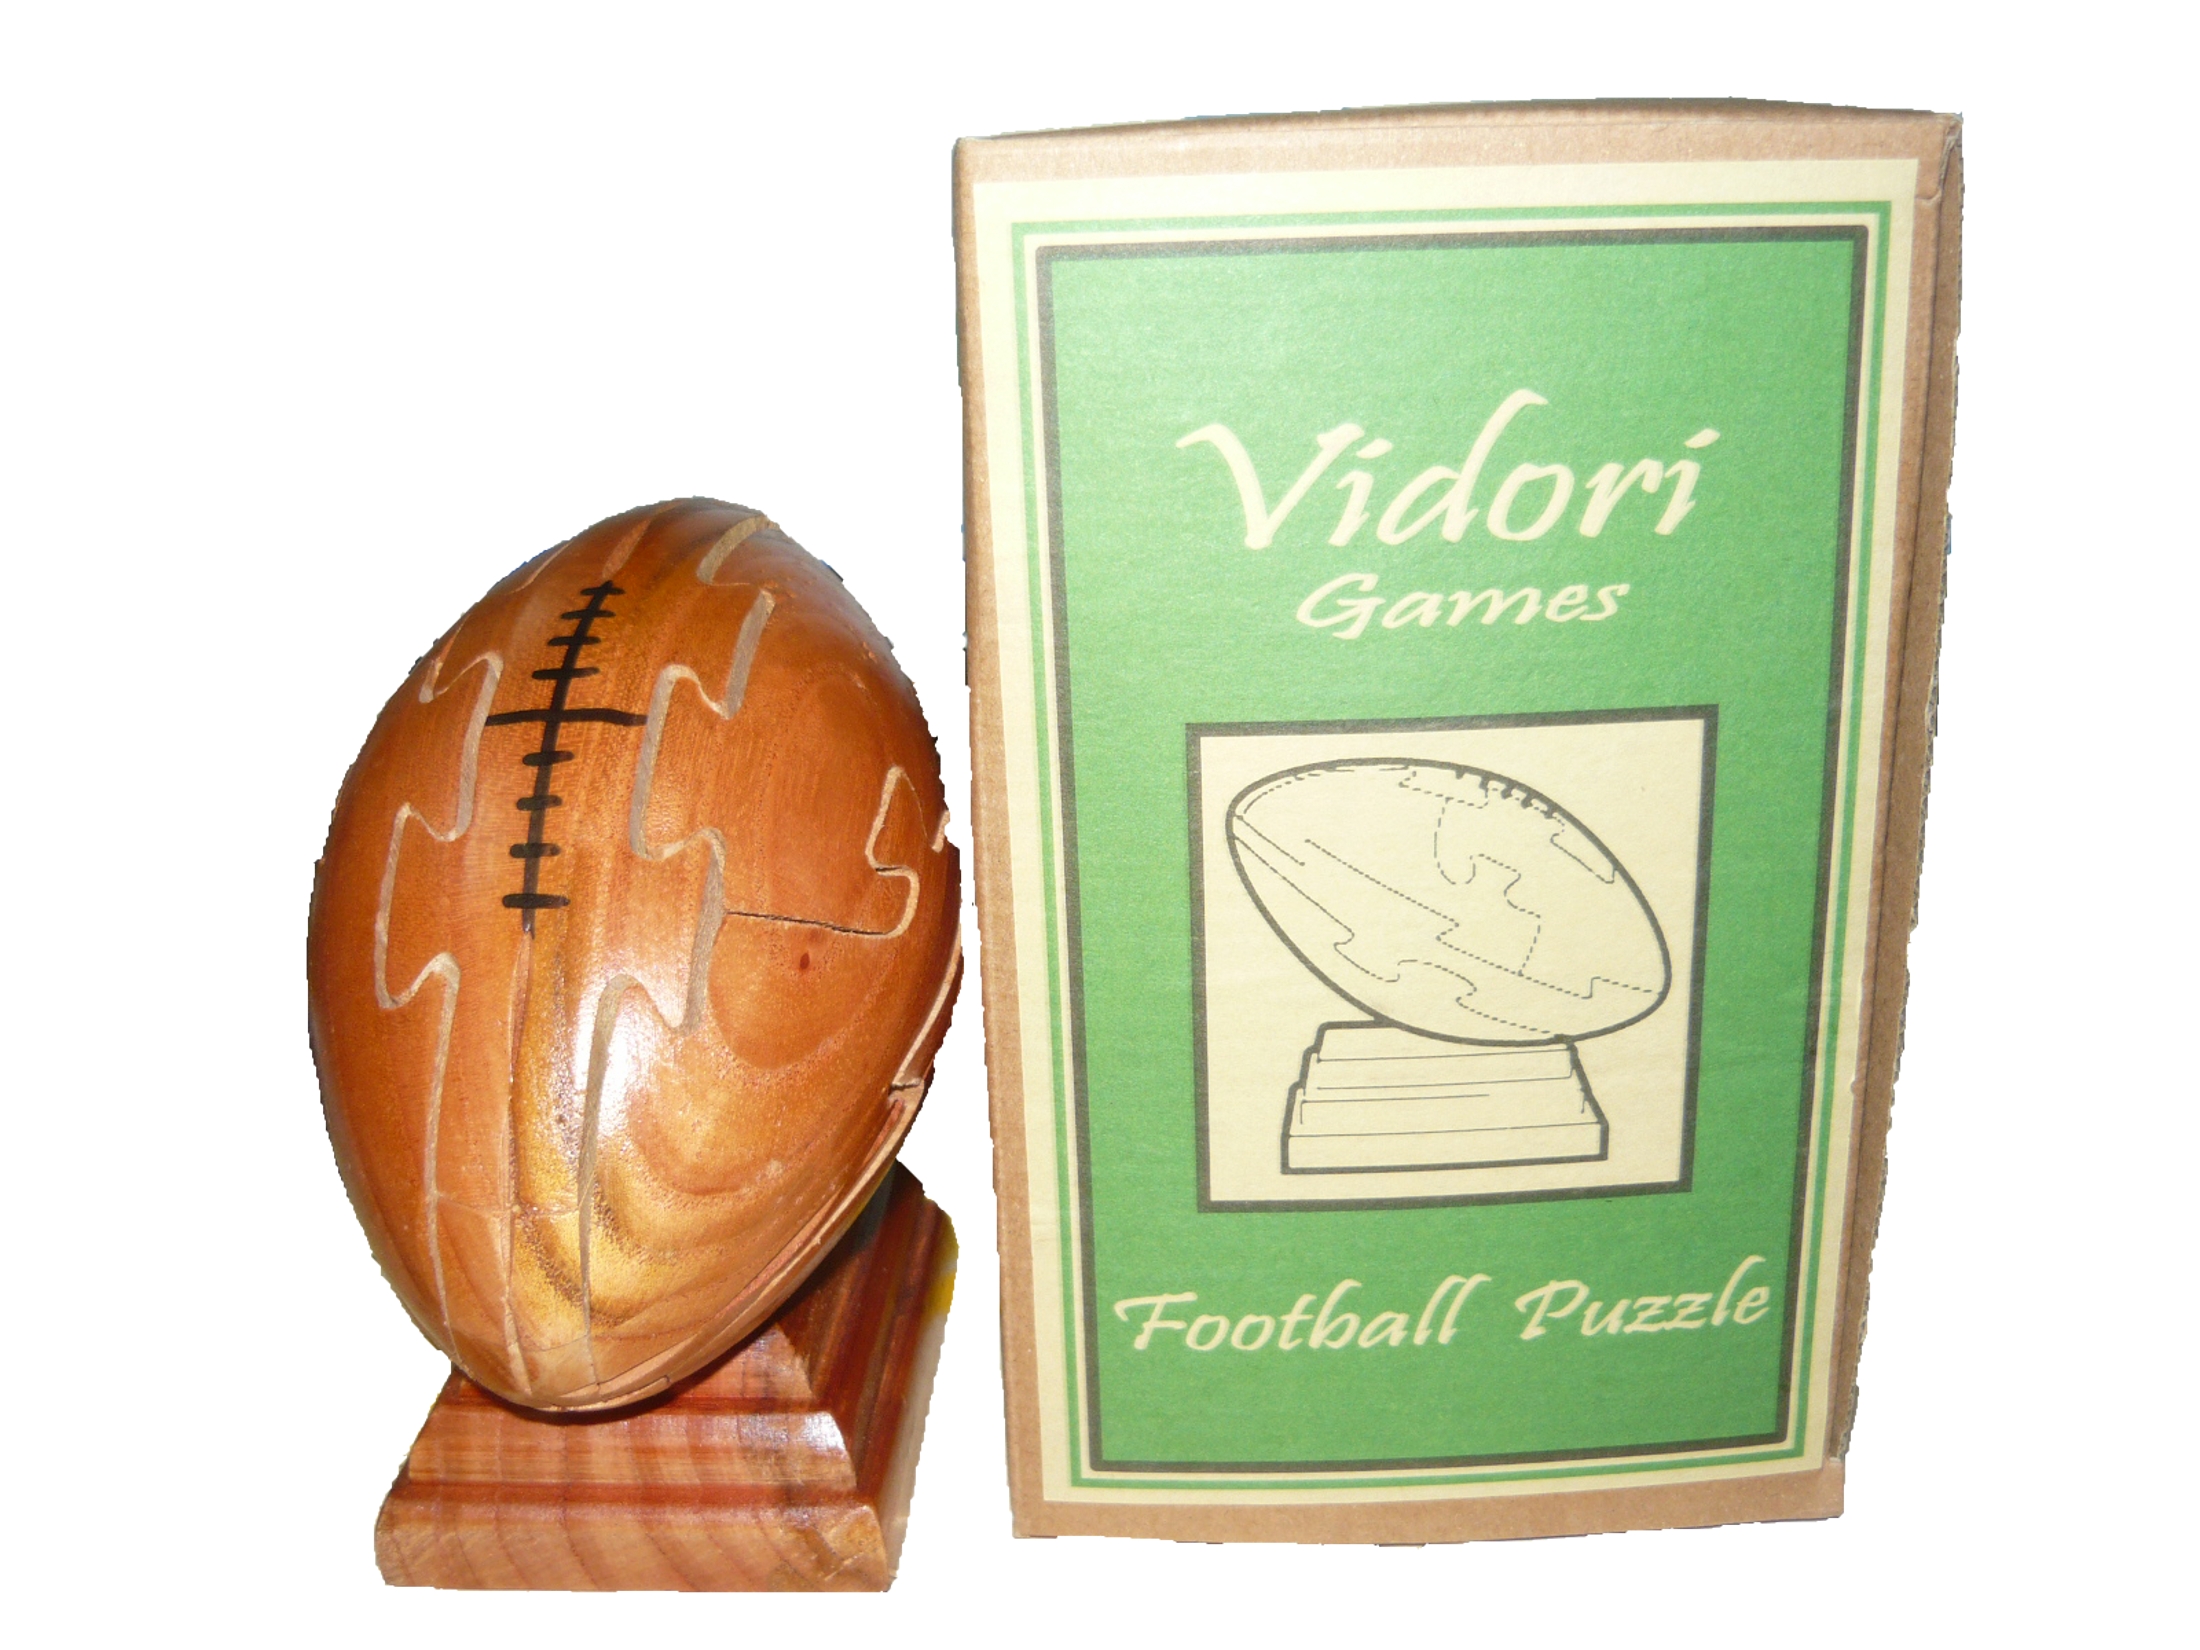 Football Puzzle - Vidori Games